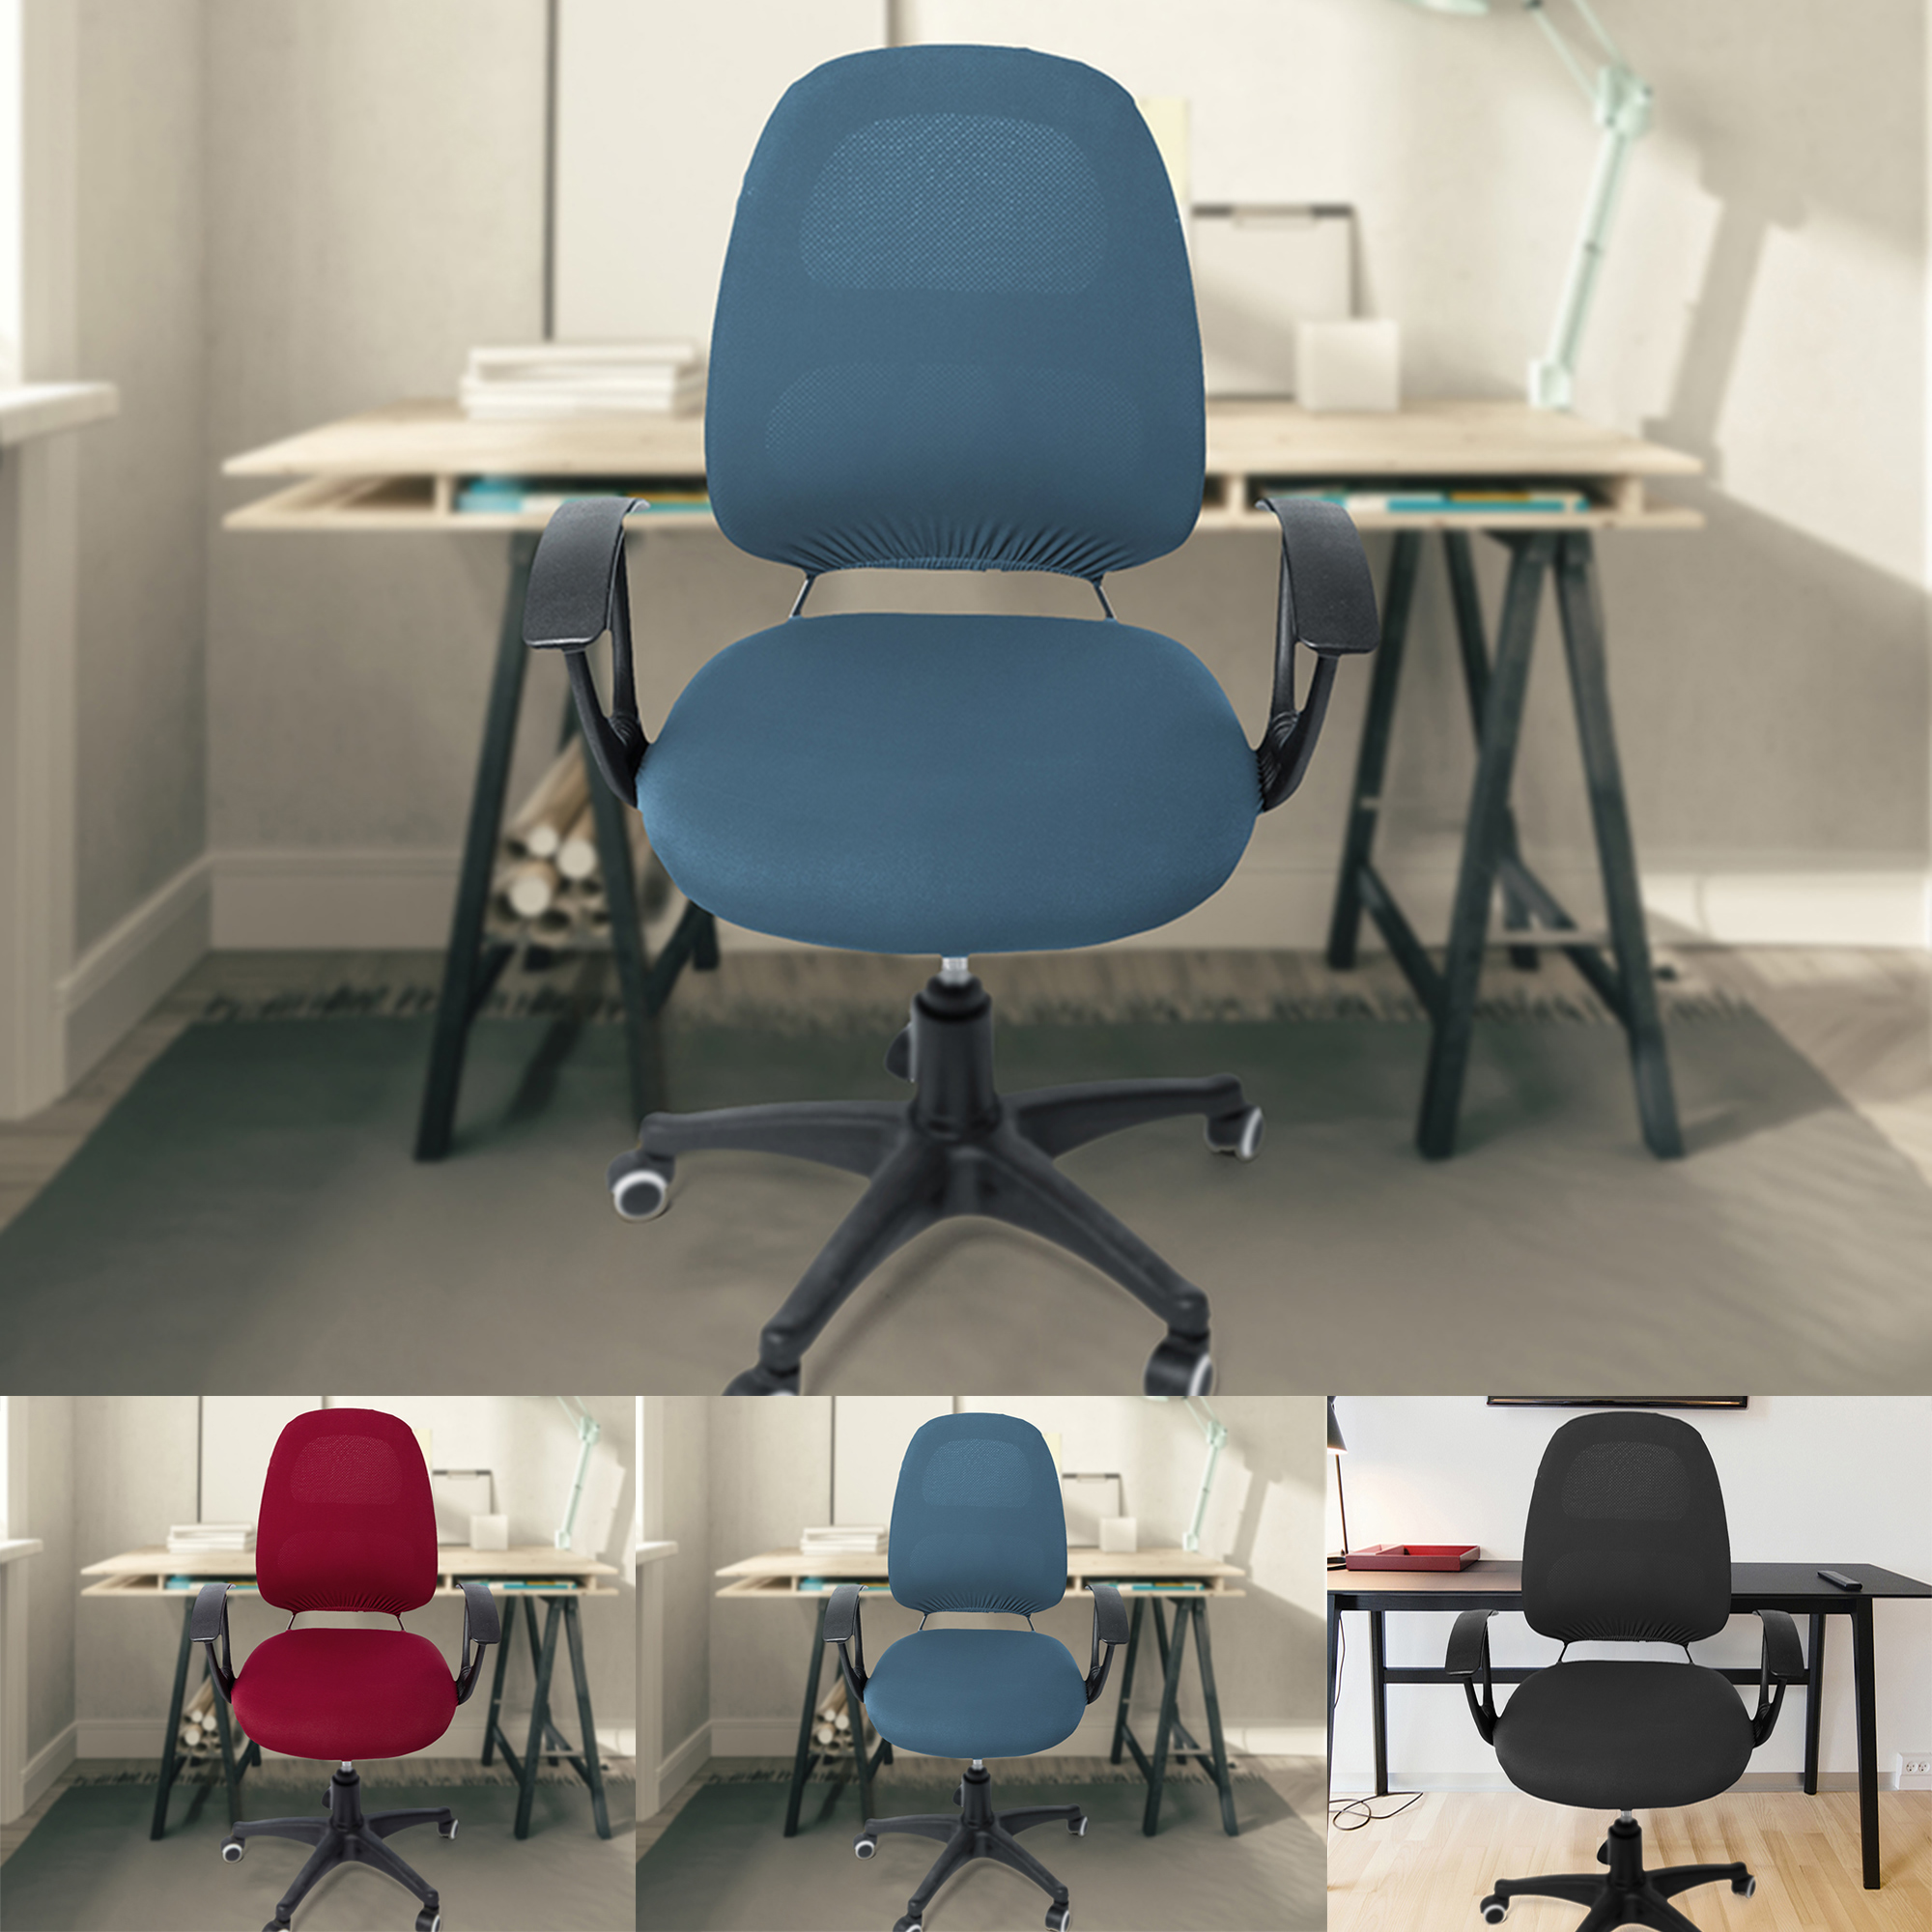 Computer Office Chair Cover Universal Chair Seat Covers Stretch Rotating Chair Slipcovers Washable Spandex Desk Chair Cover Protectors Walmart Com Walmart Com